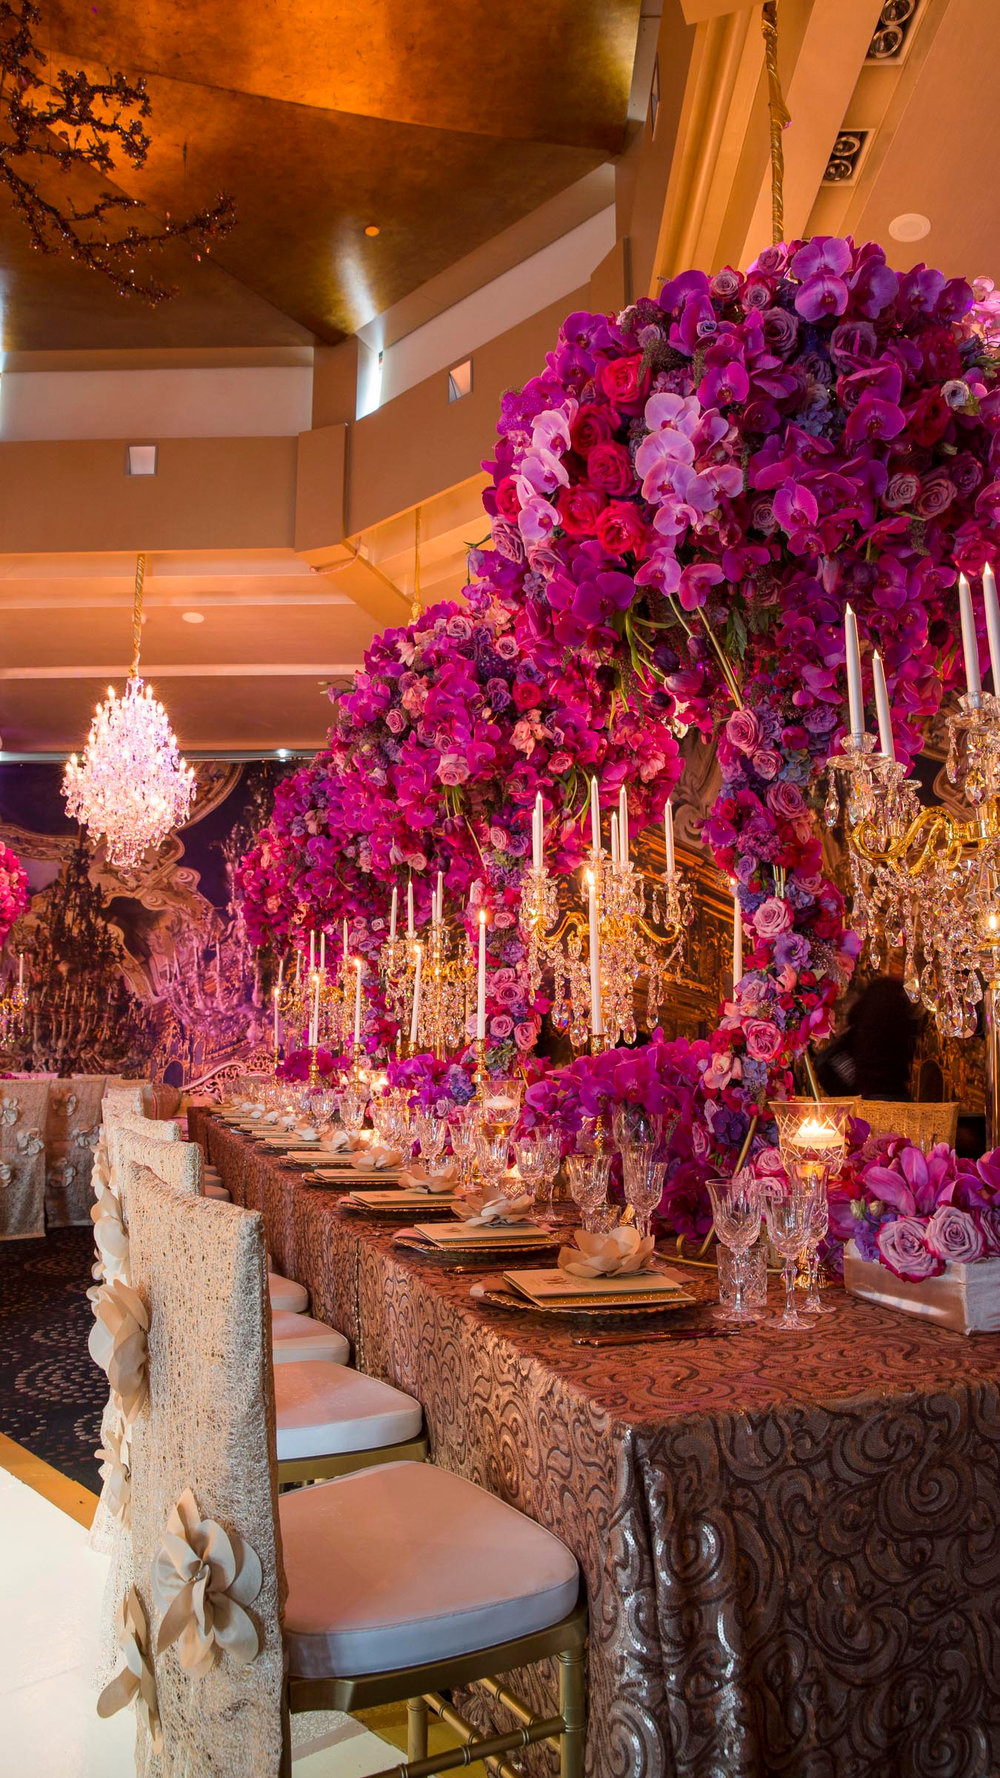 karen_tran_luxury_linen_flowers_centrepiece_wedding.jpg